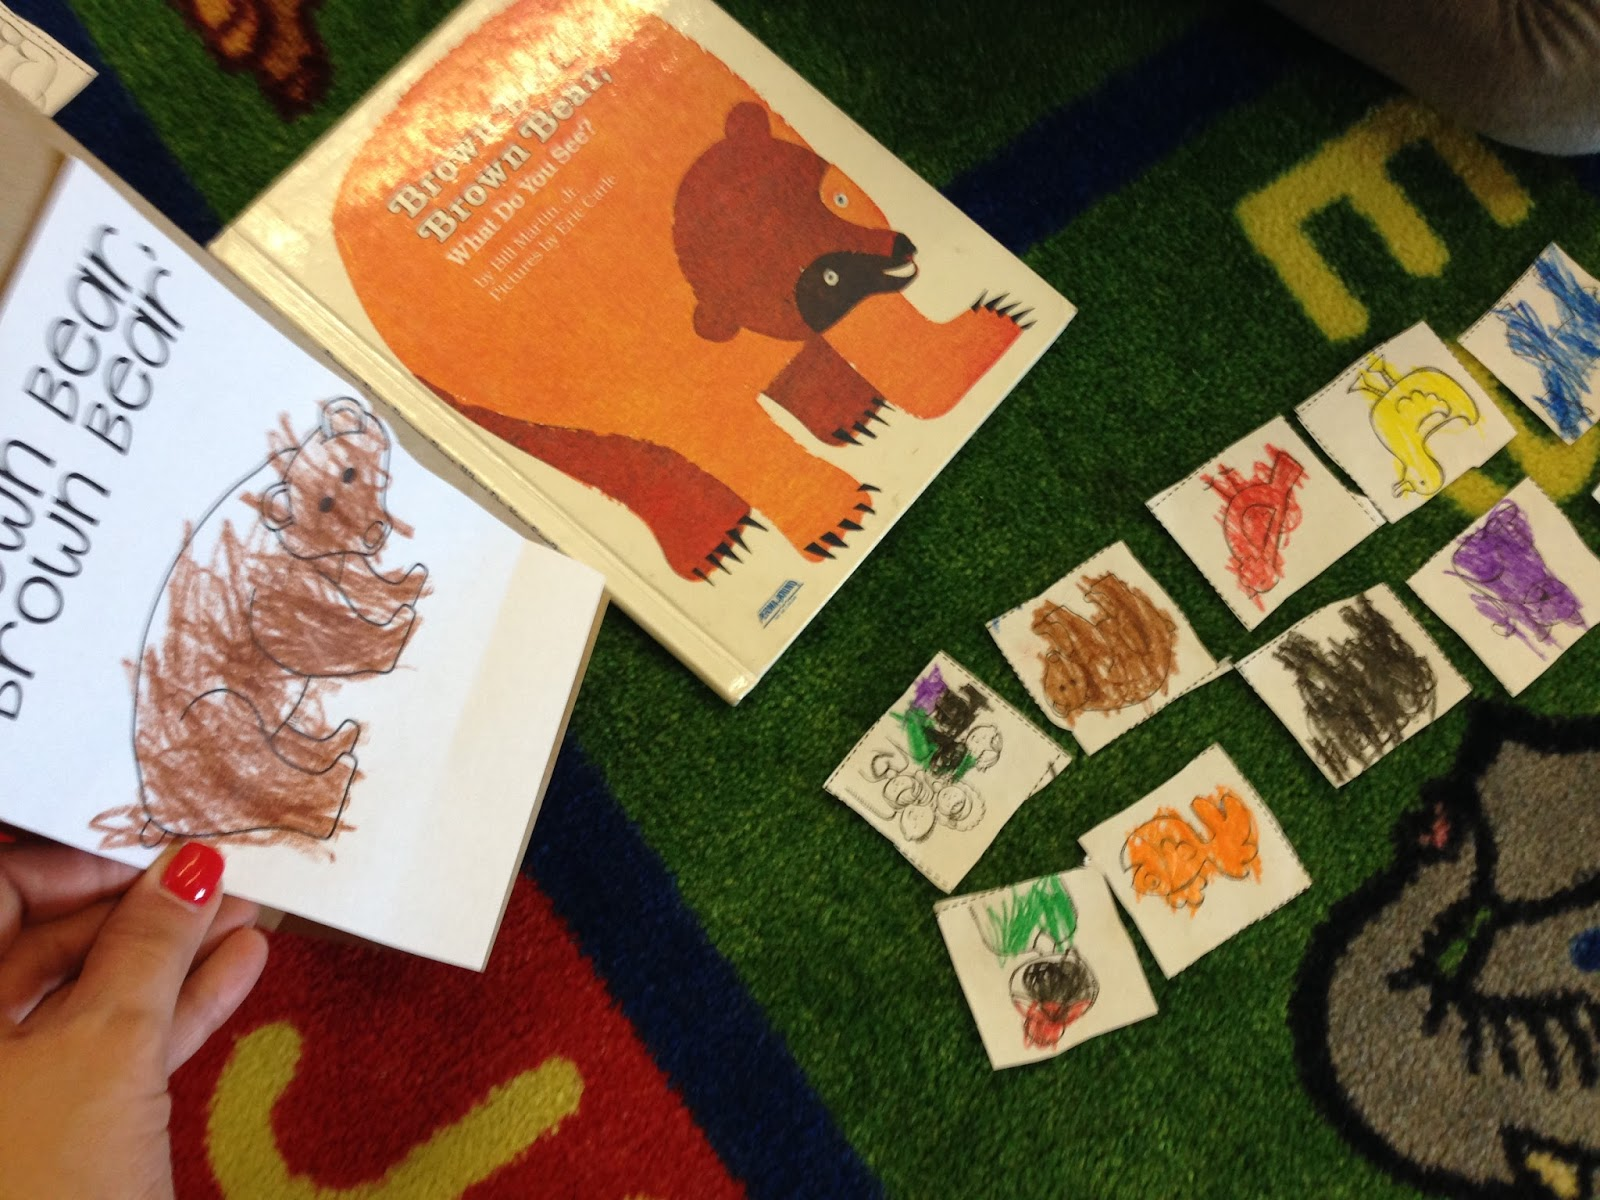 Brown Bear Brown Bear, Bill Martin Jr, kindergarten books